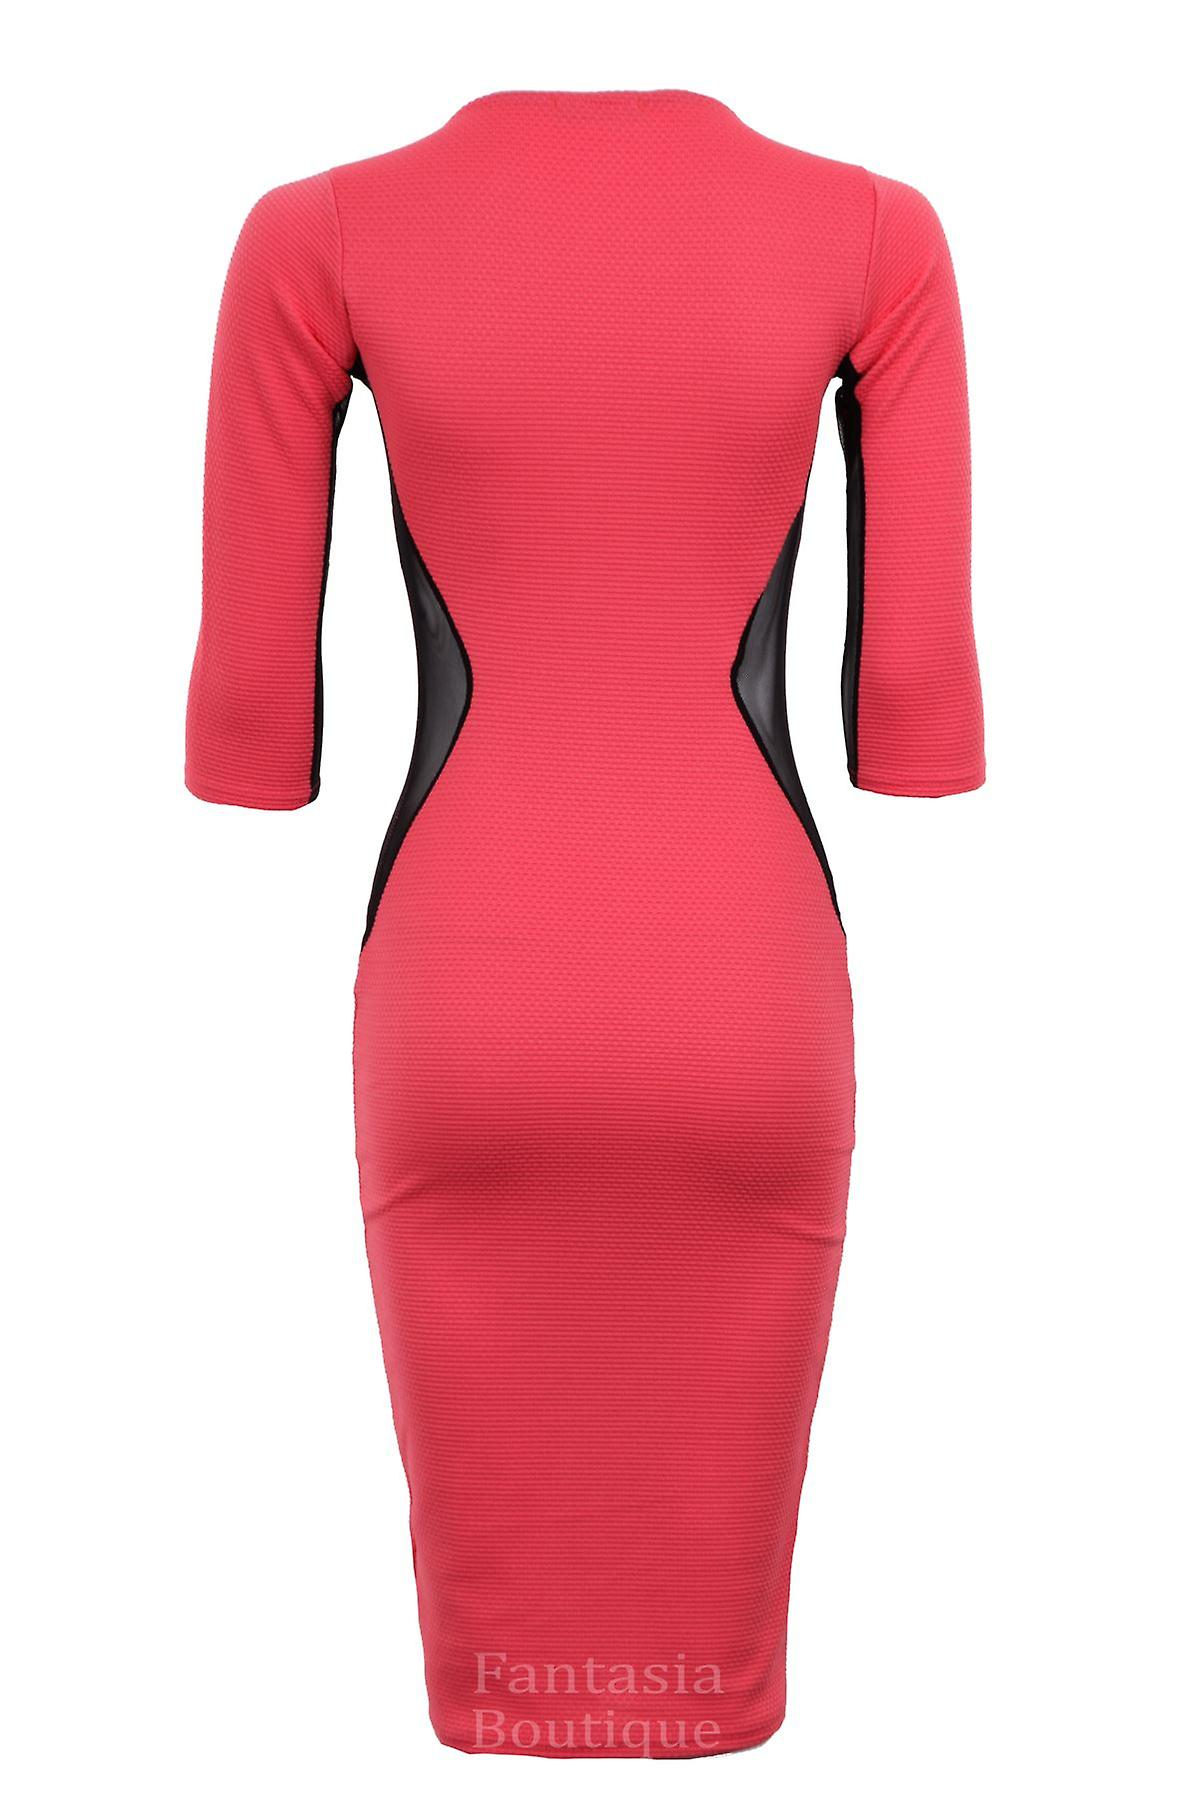 New Ladies 3/4 Sleeves Ribbed Net Mesh Women's Bodycon Dress